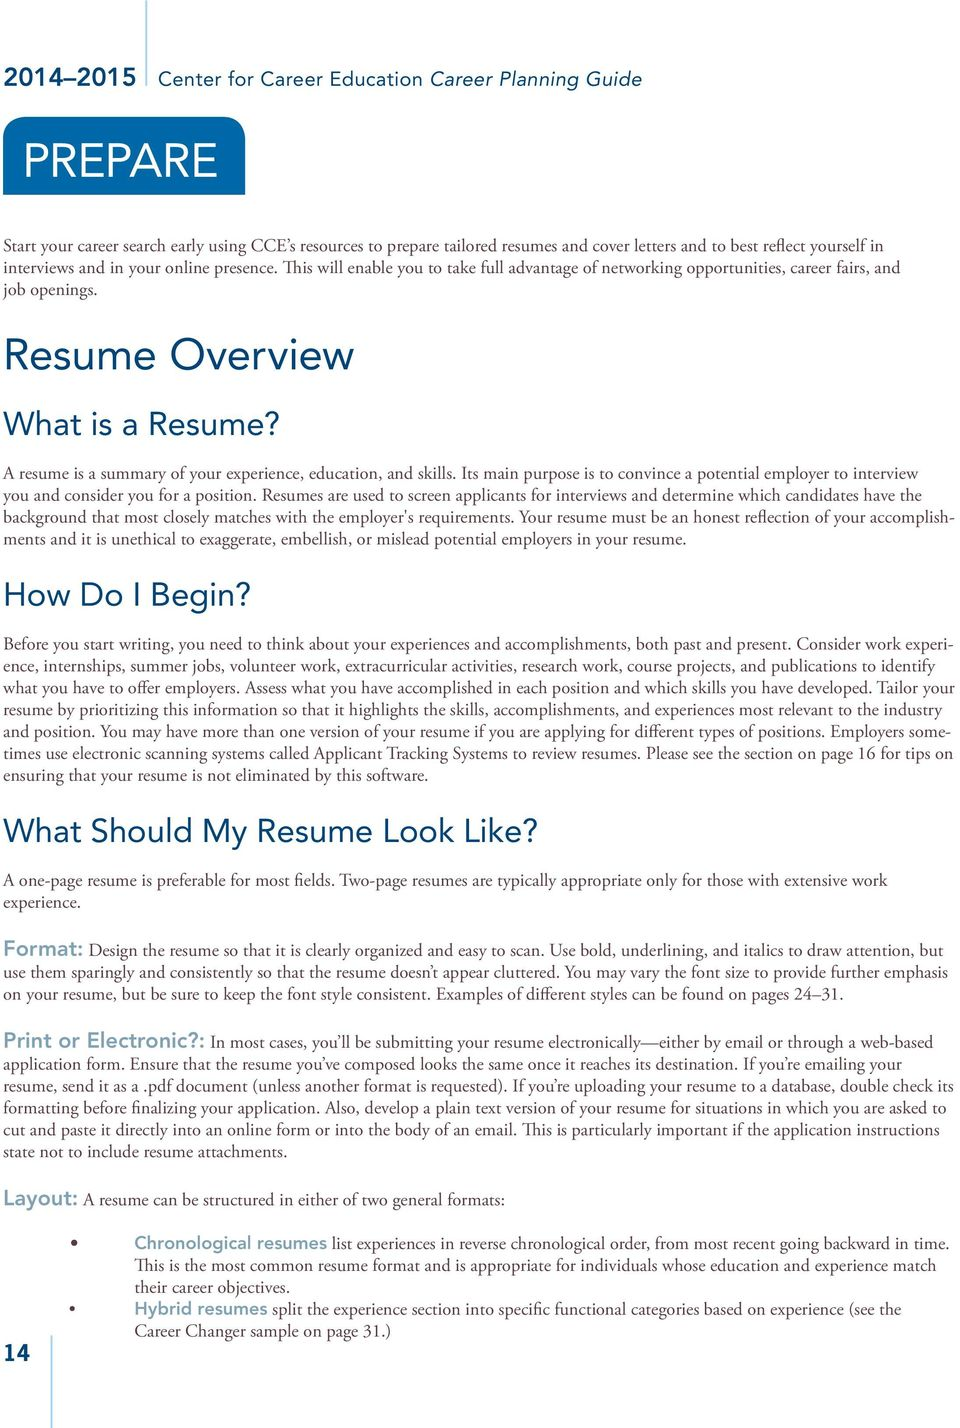 A resume is a summary of your experience, education, and skills. Its main purpose is to convince a potential employer to interview you and consider you for a position.